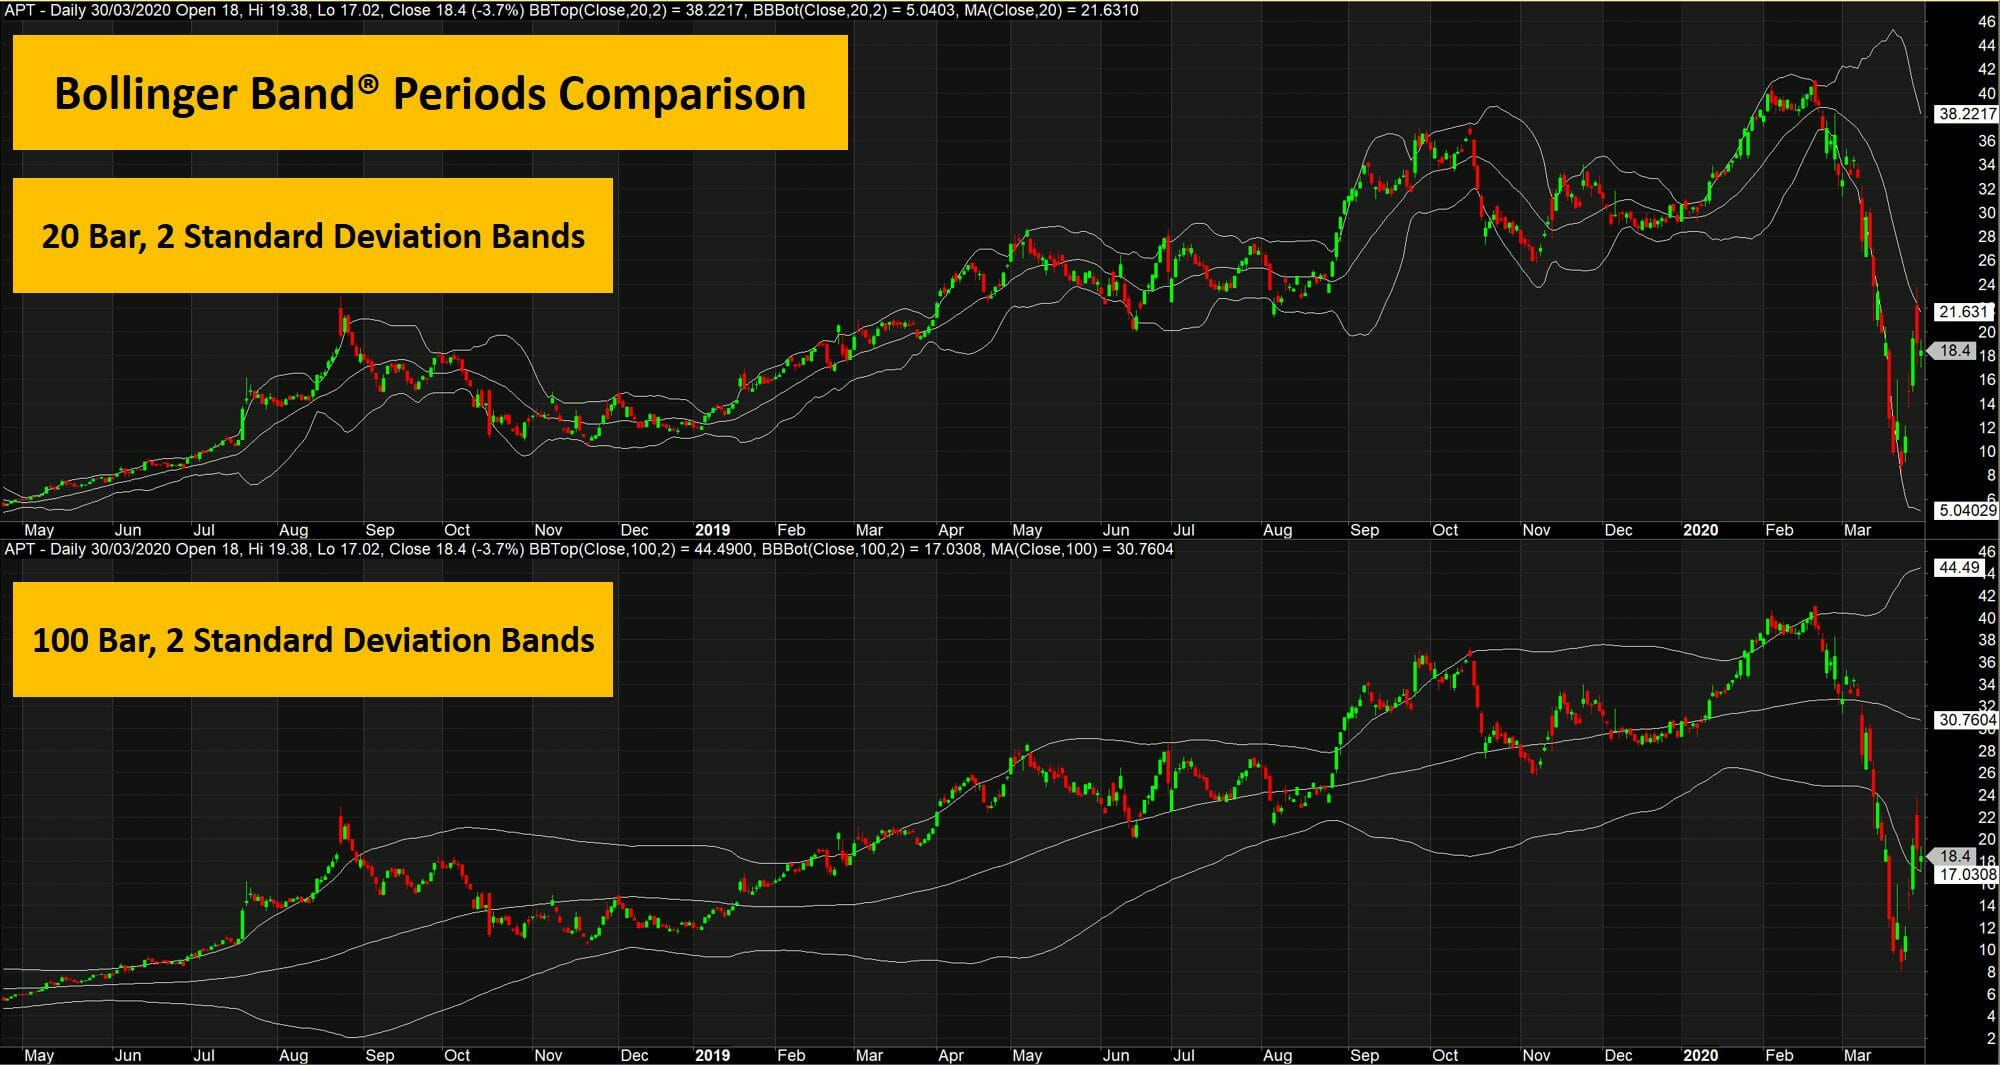 The ultimate guide to bollinger bands - impact of bollinger band periods